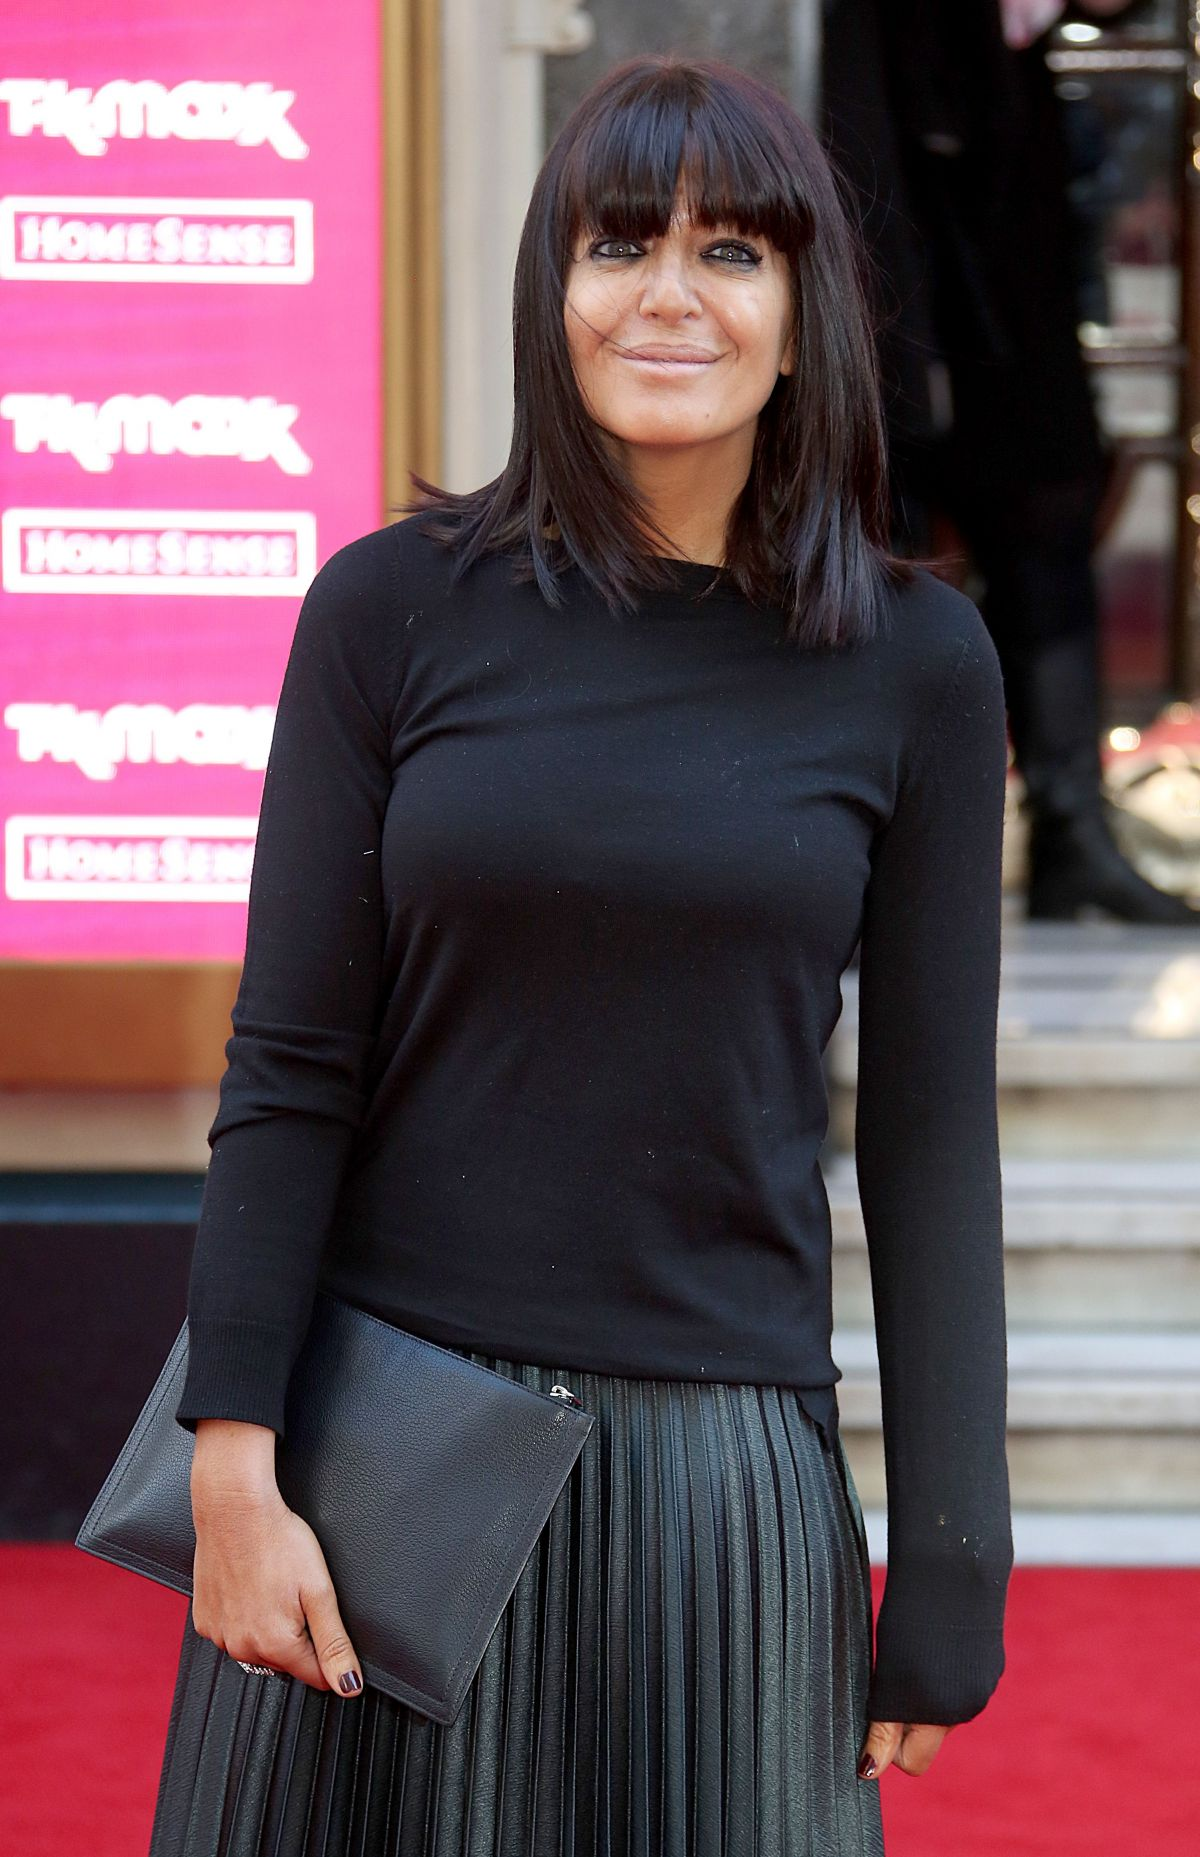 Pictures Claudia Winkleman nudes (18 photo), Topless, Paparazzi, Feet, braless 2015